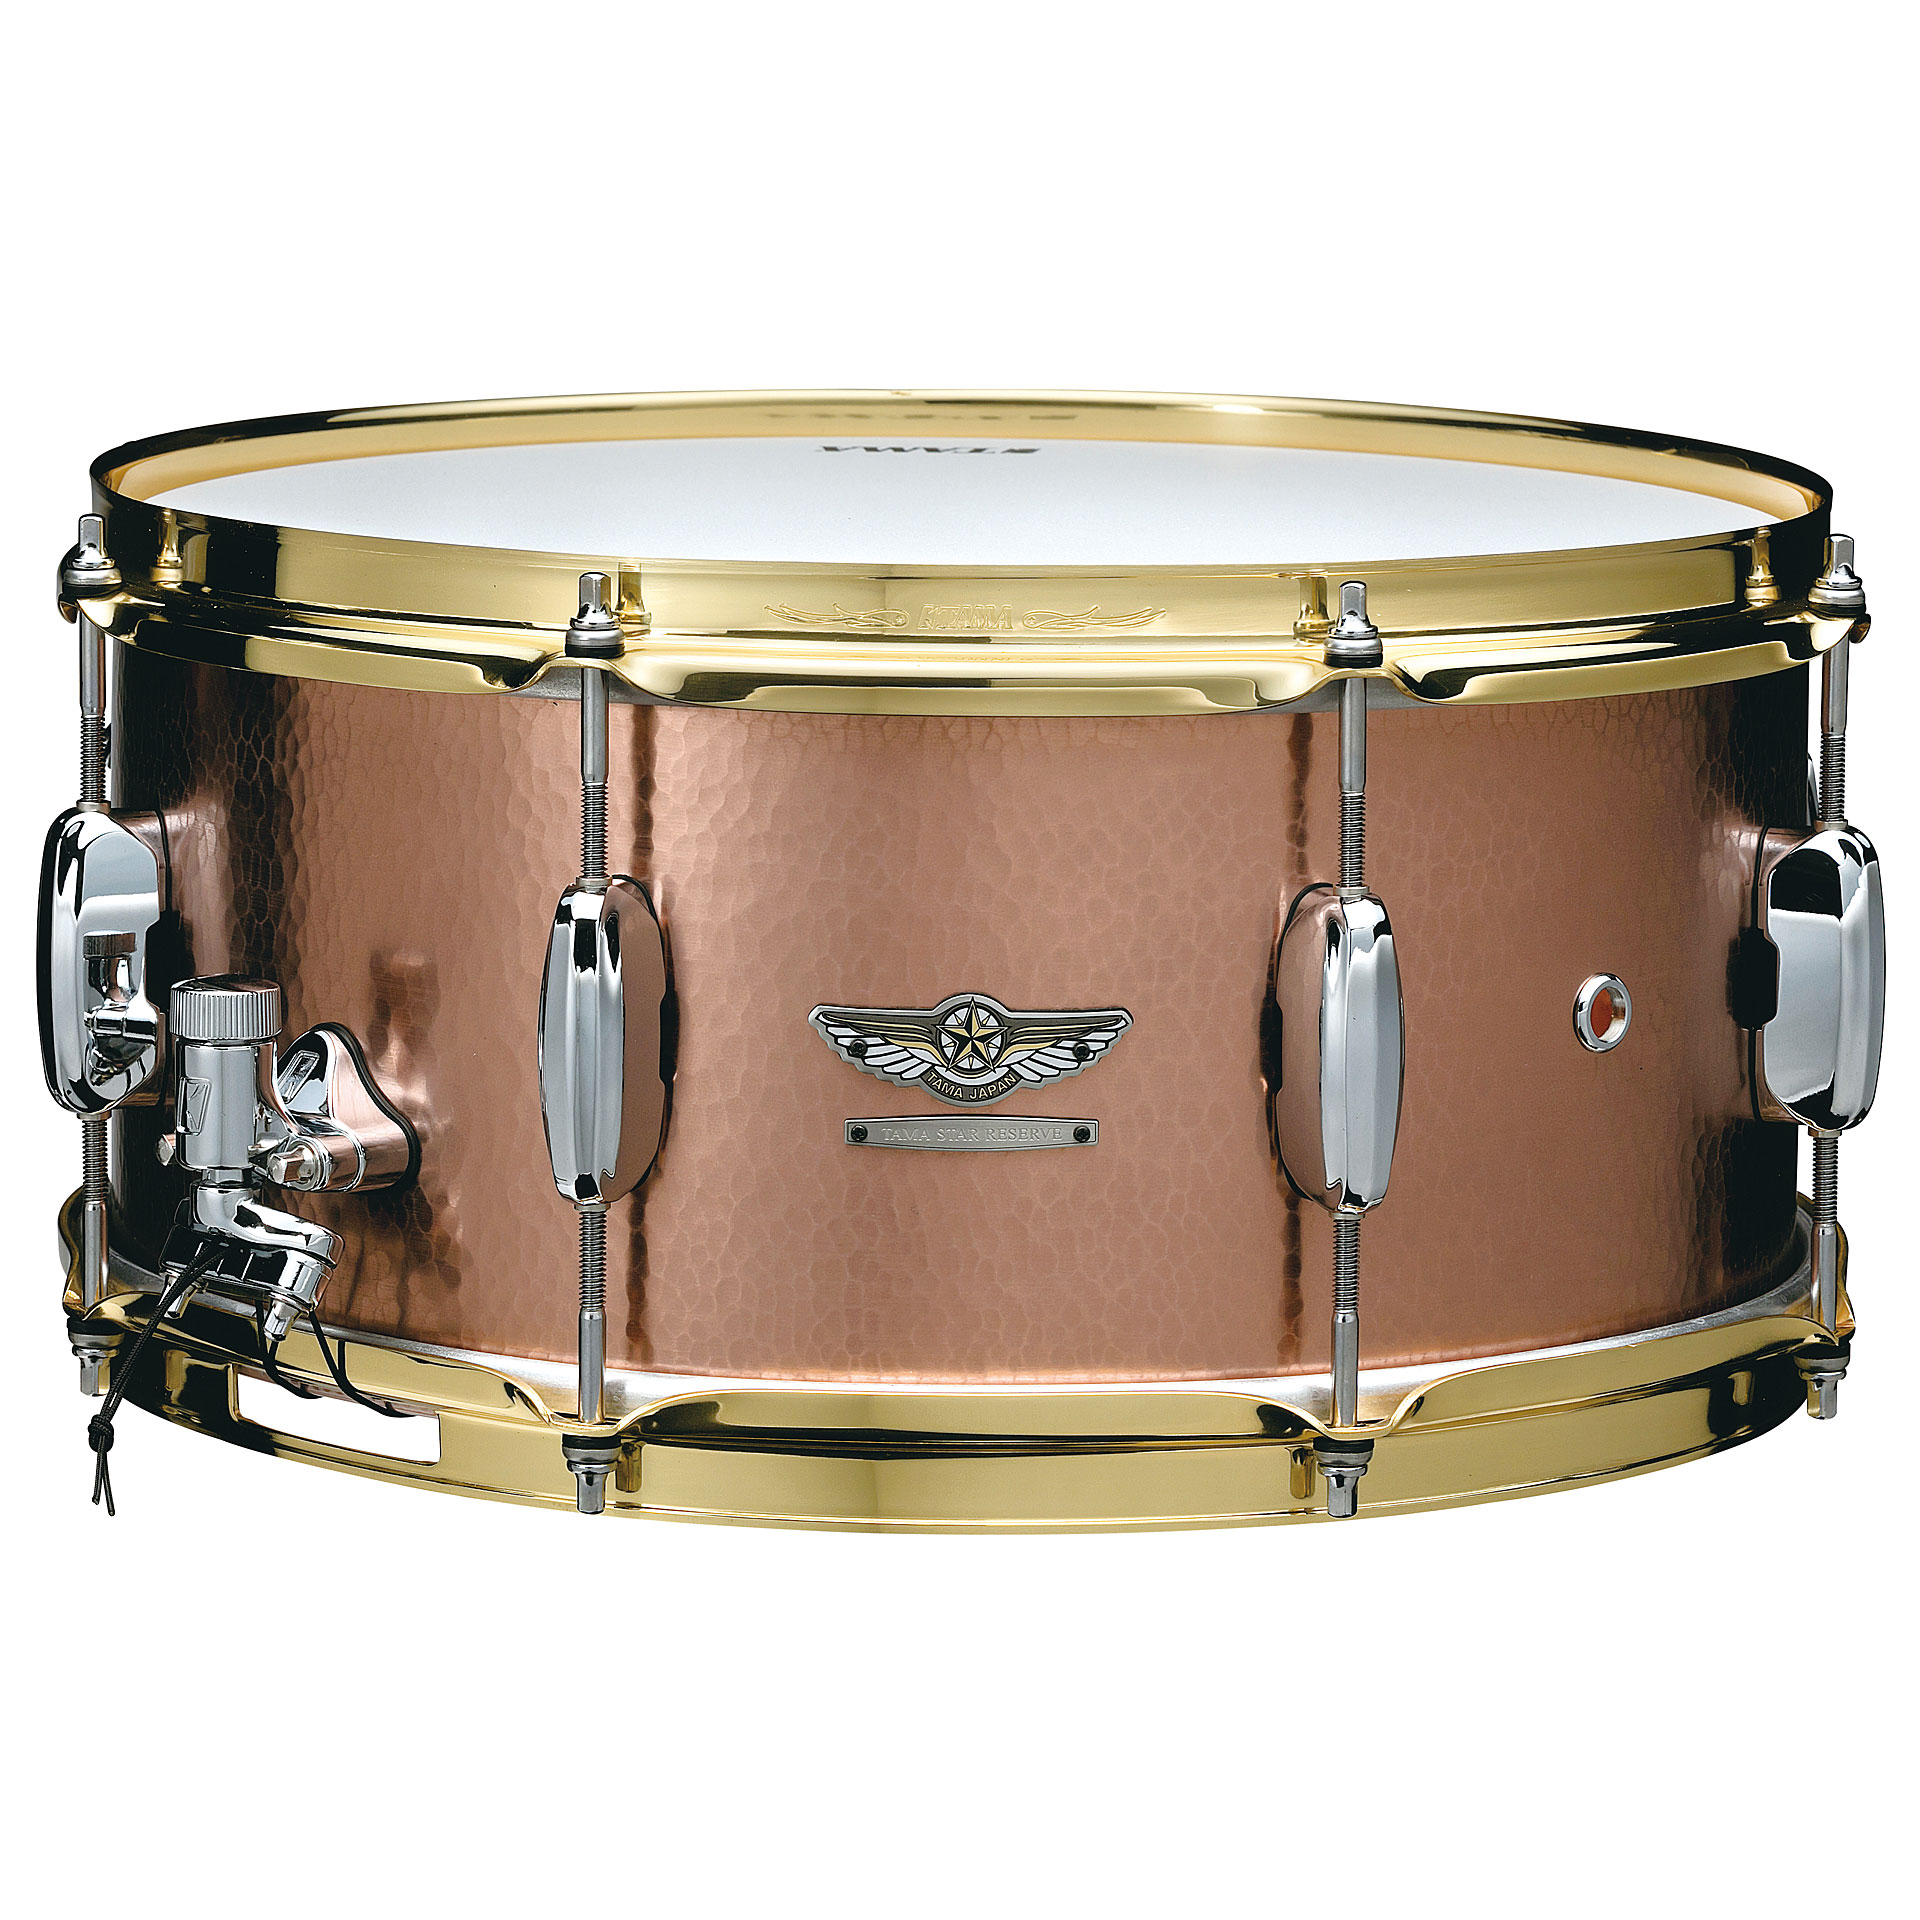 tama men Get the guaranteed lowest prices on tama mens clothing instruments at musician's friend.